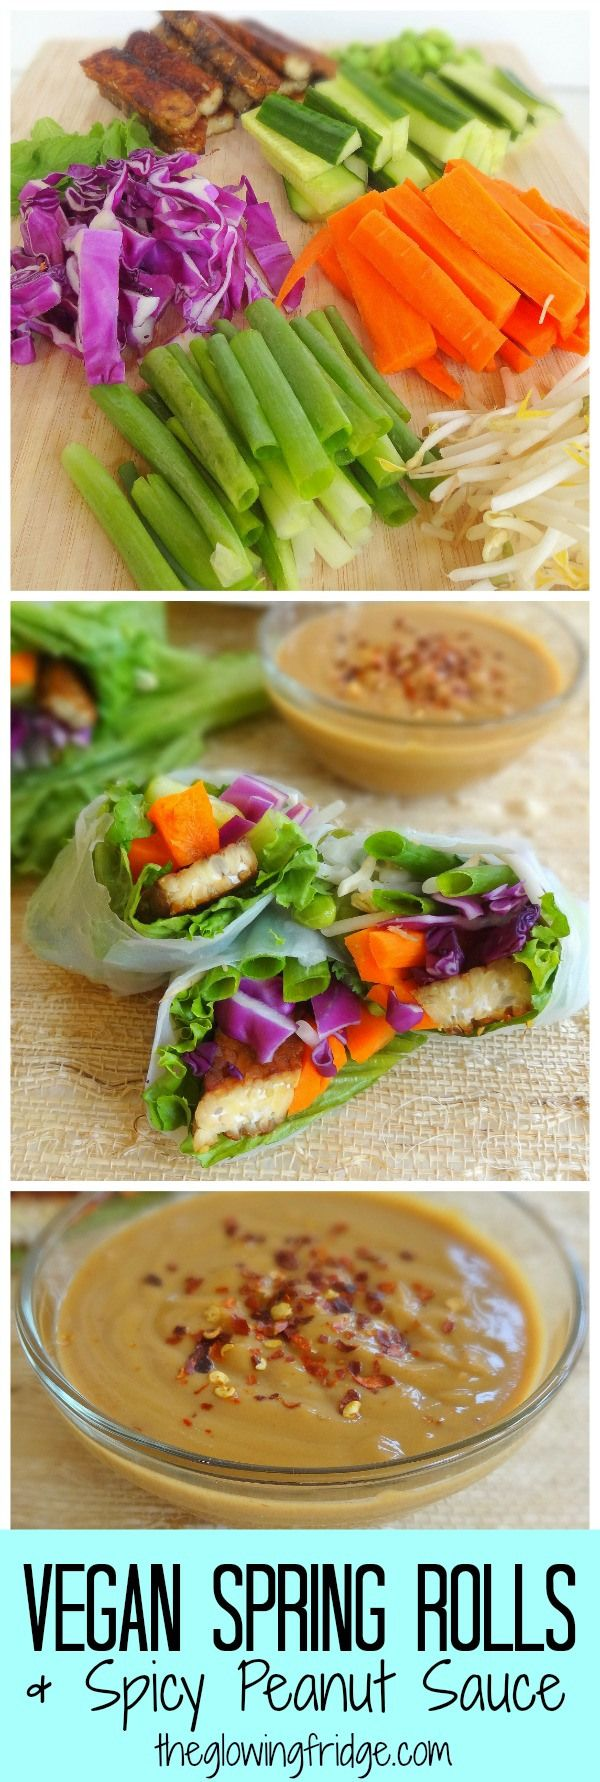 Spring Rolls with a Spicy Peanut Sauce